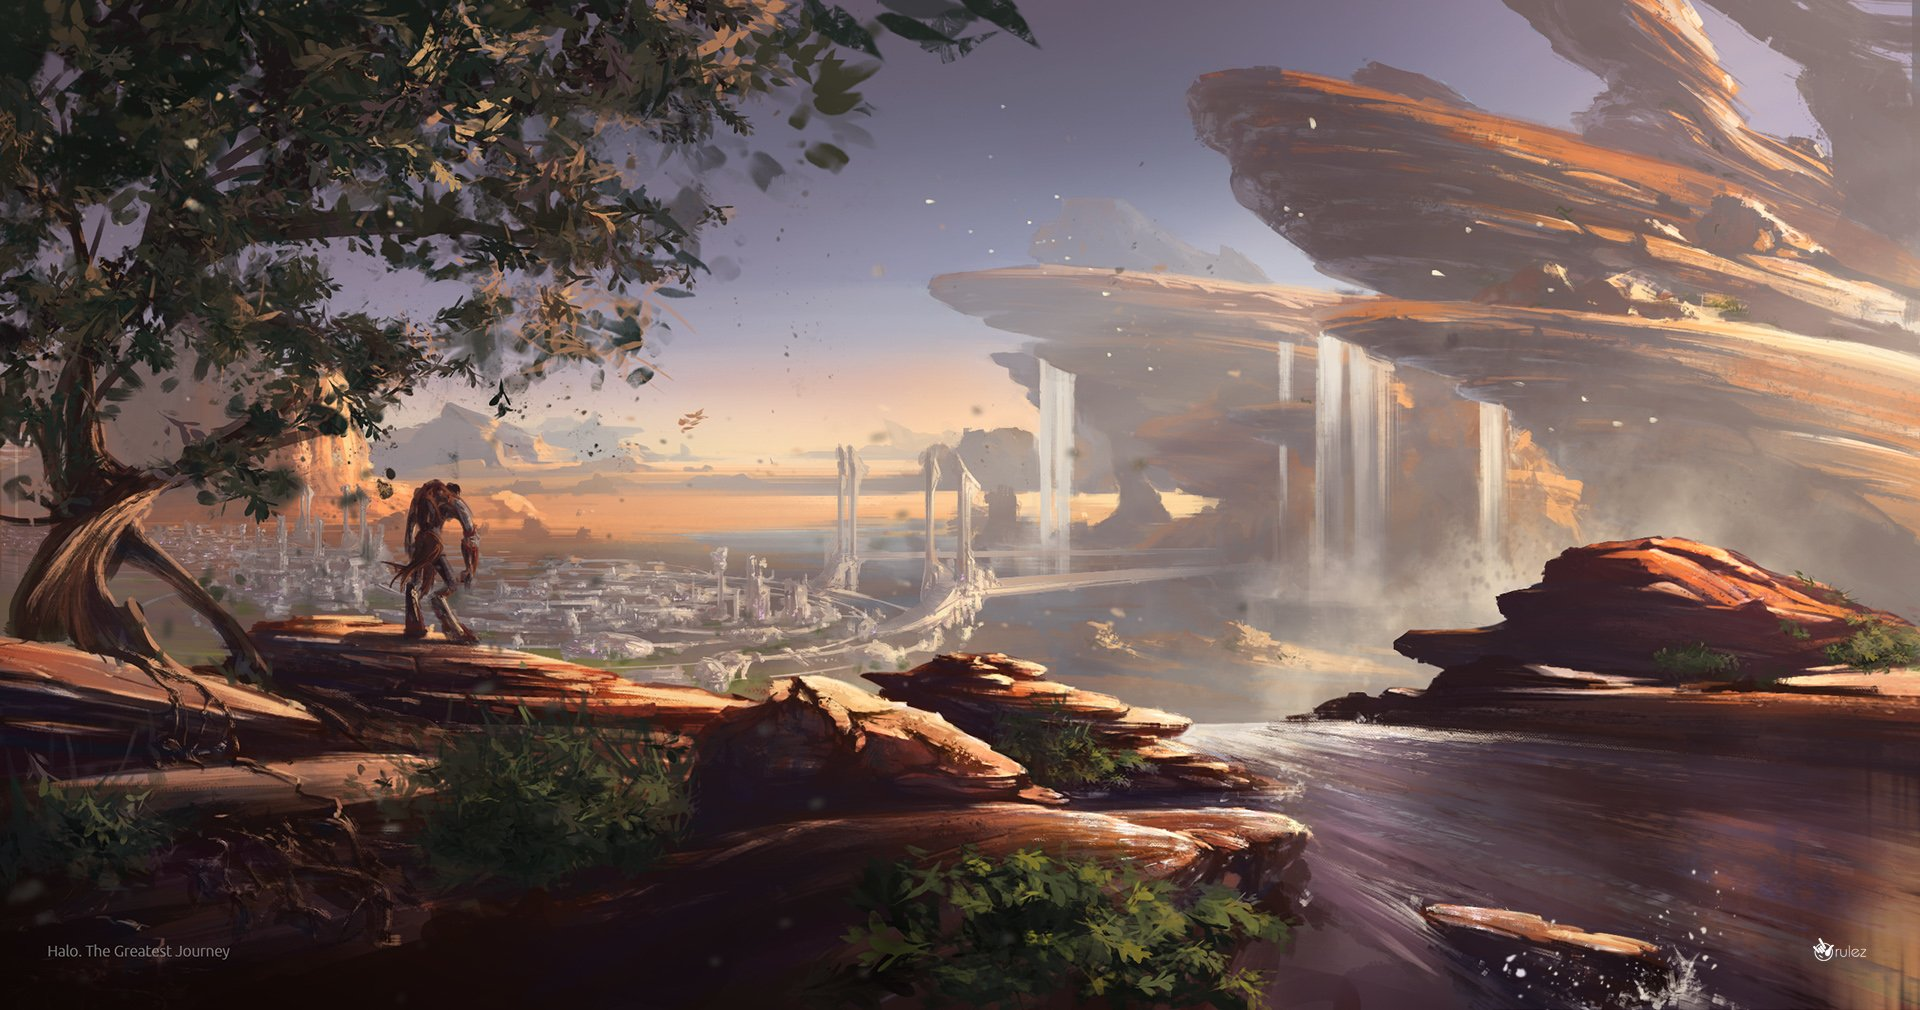 Video Game - Halo  Artistic Landscape Waterfall Wallpaper